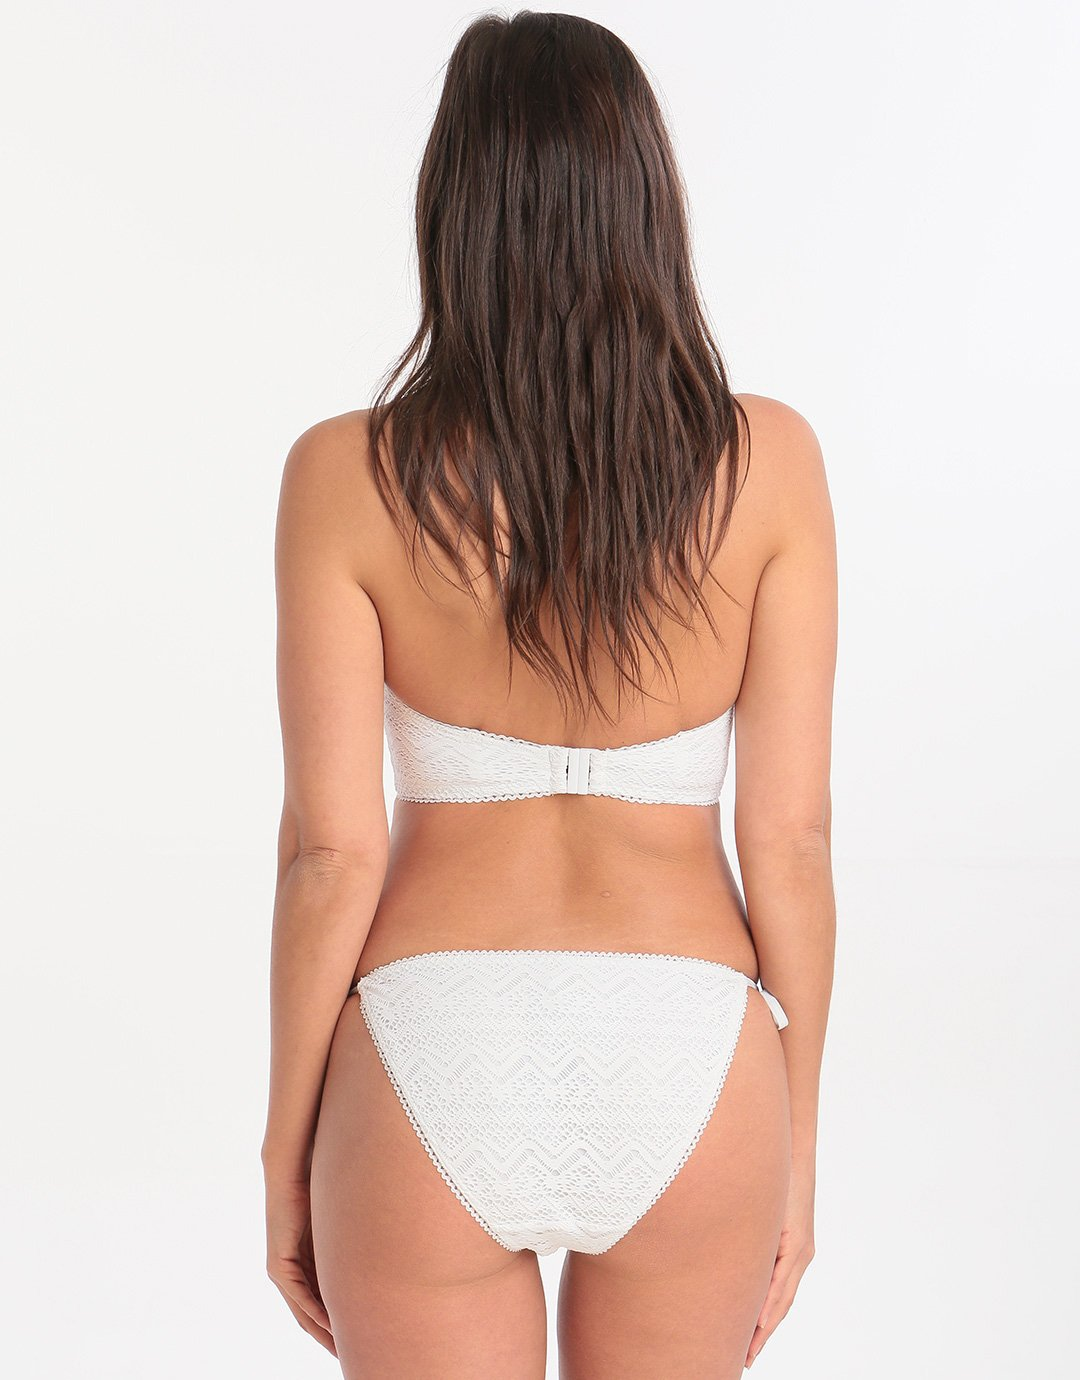 Lepel London White Sands Moulded Longline Bikini Top - Cream